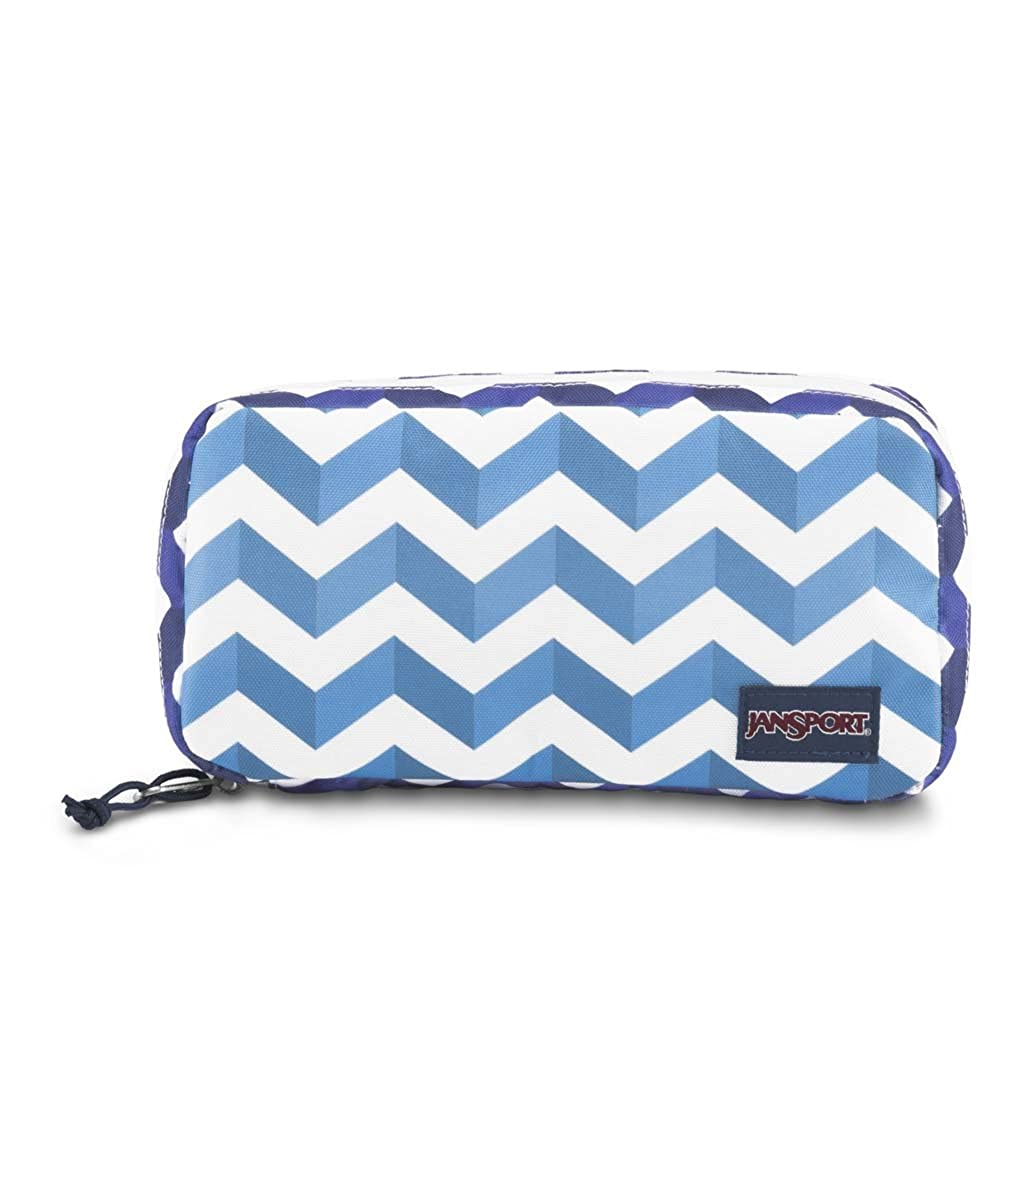 JanSport T68X T68X T68X Damens's Pixel Pouch, Shadow Chevron - OS 5fde30